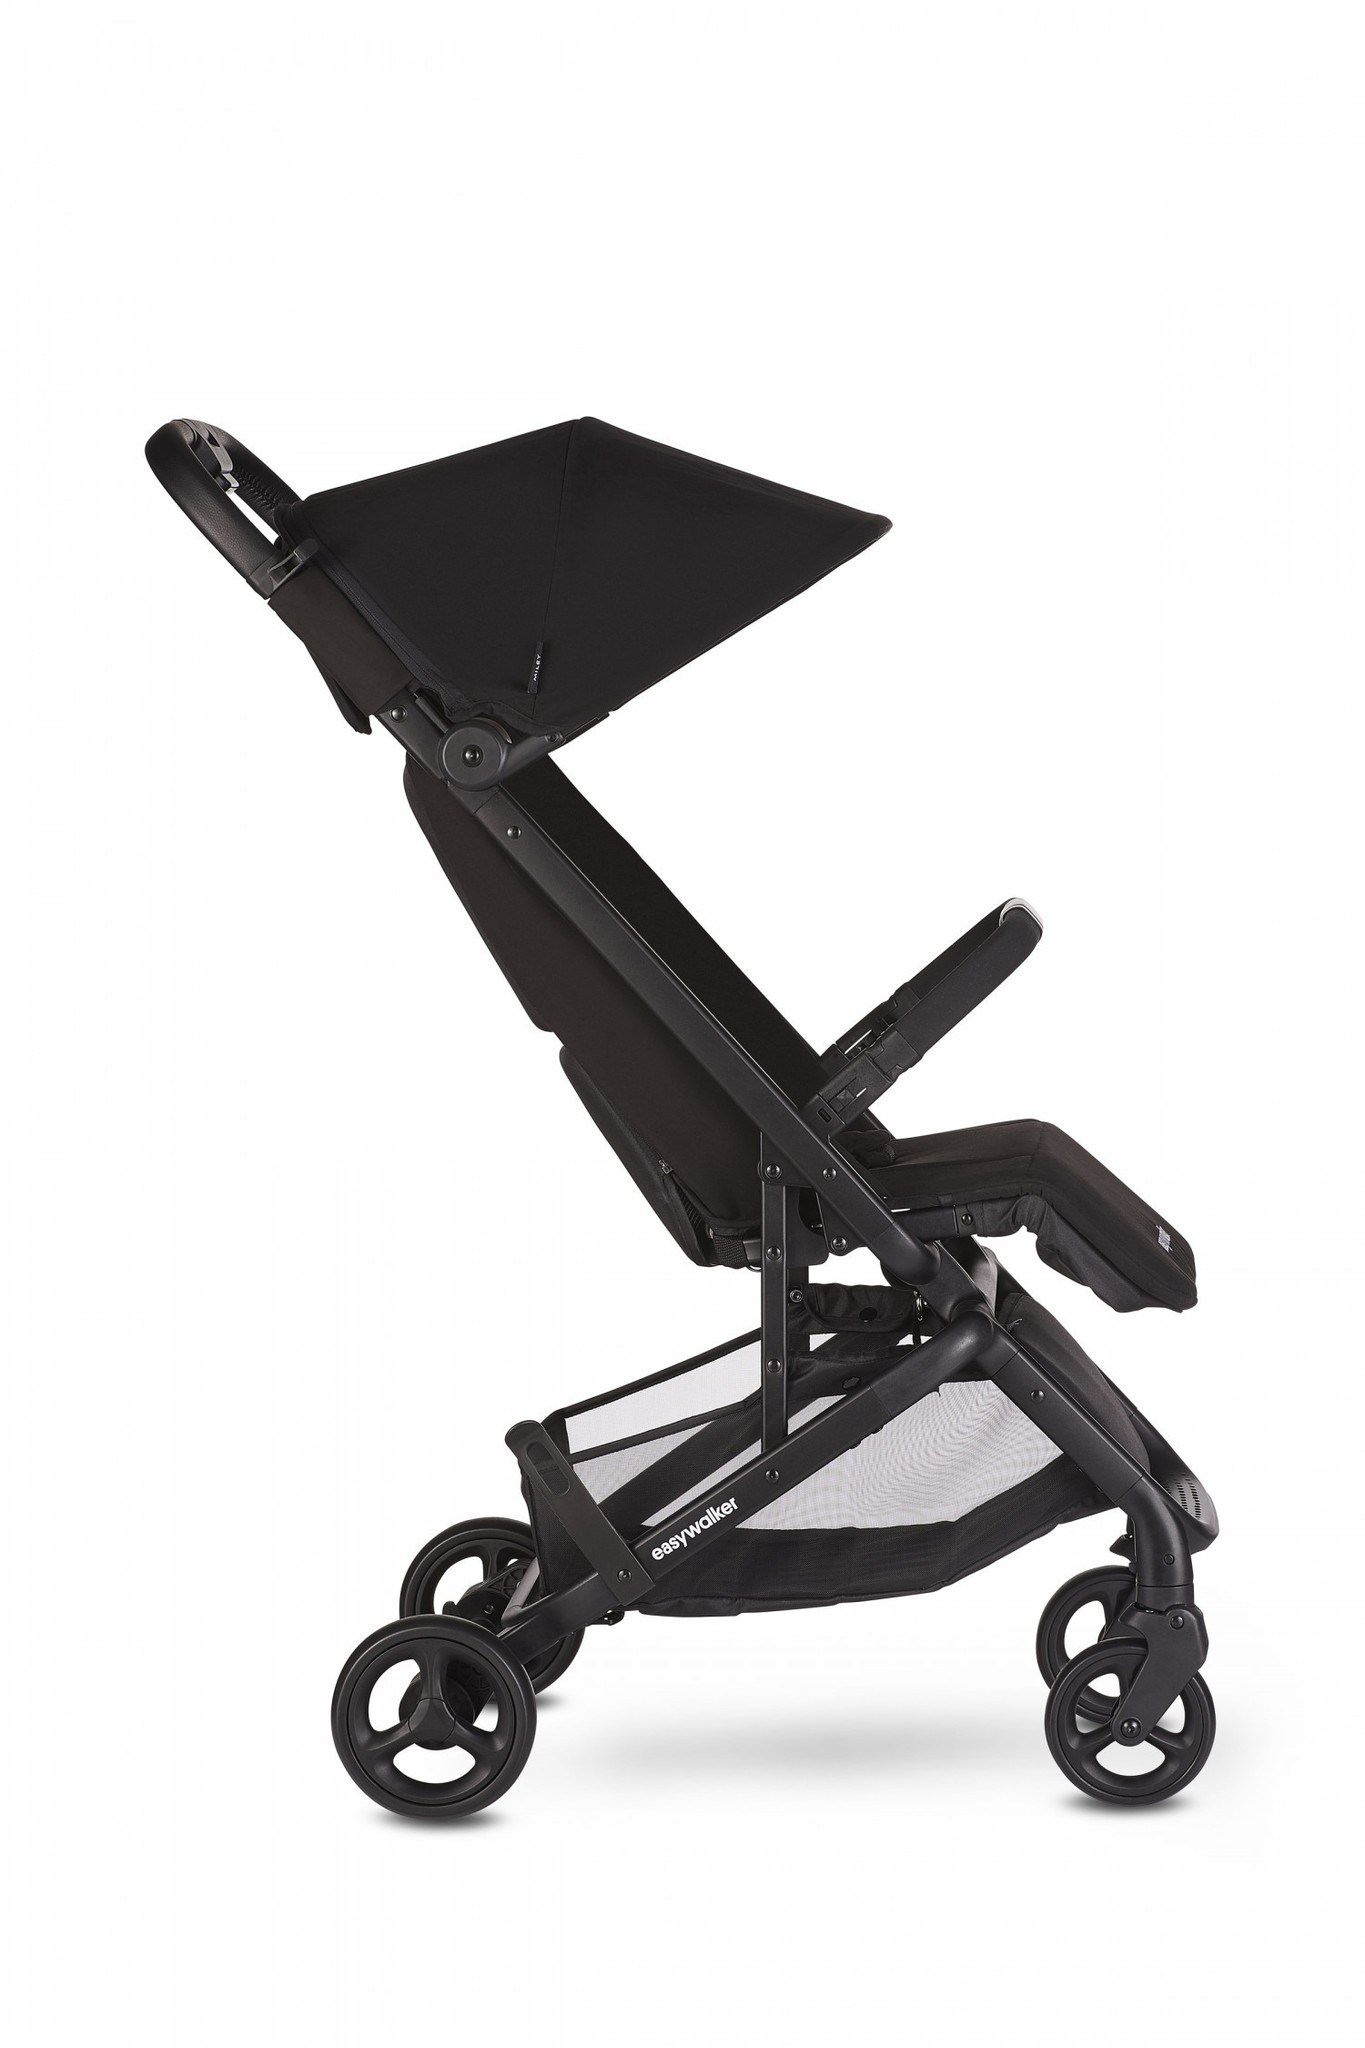 Easywalker Easywalker Miley Night Black met gratis stuurwiel!